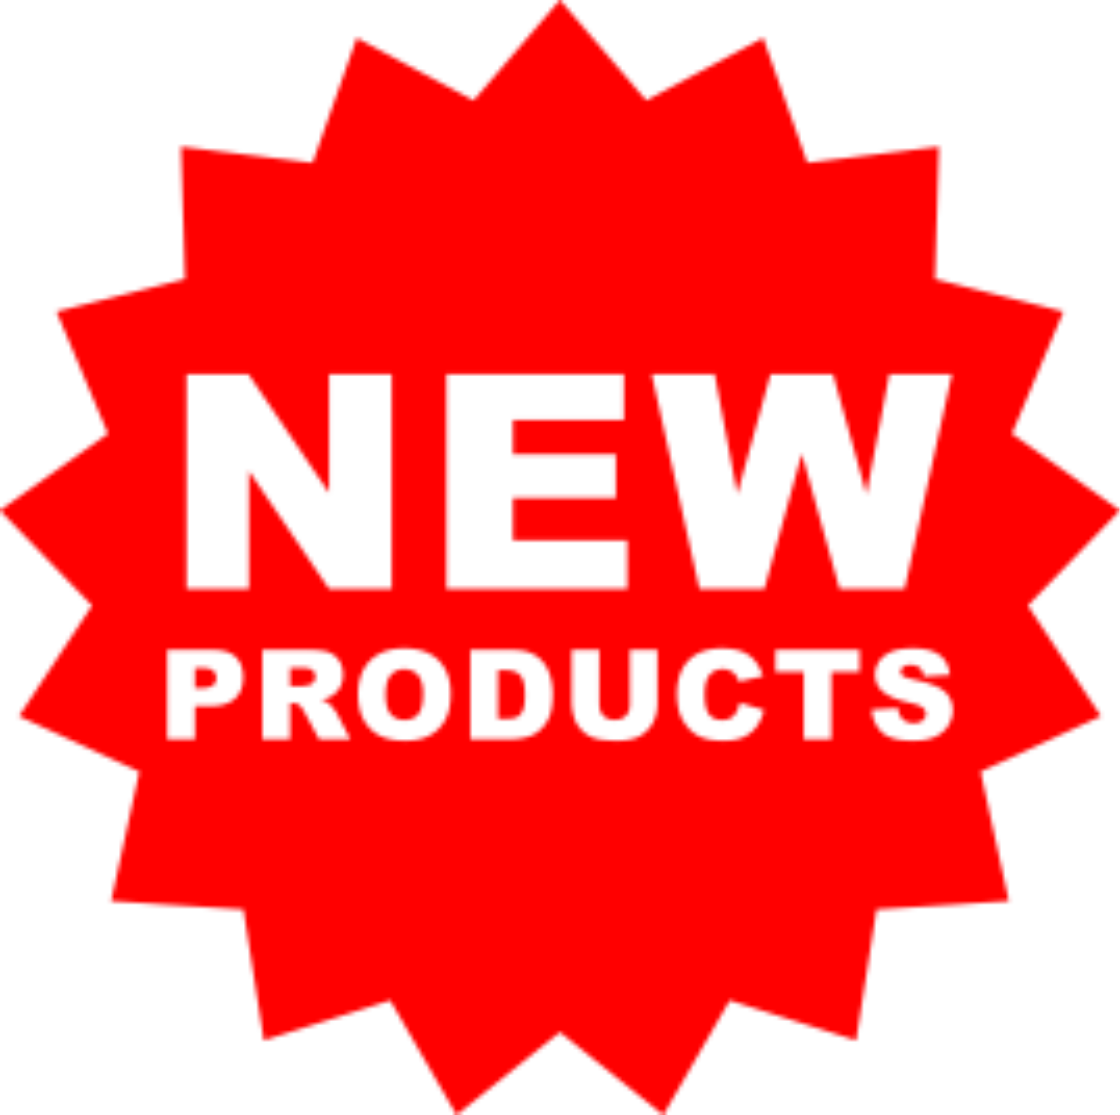 new products melling rh melling com new products in the market new products in the market